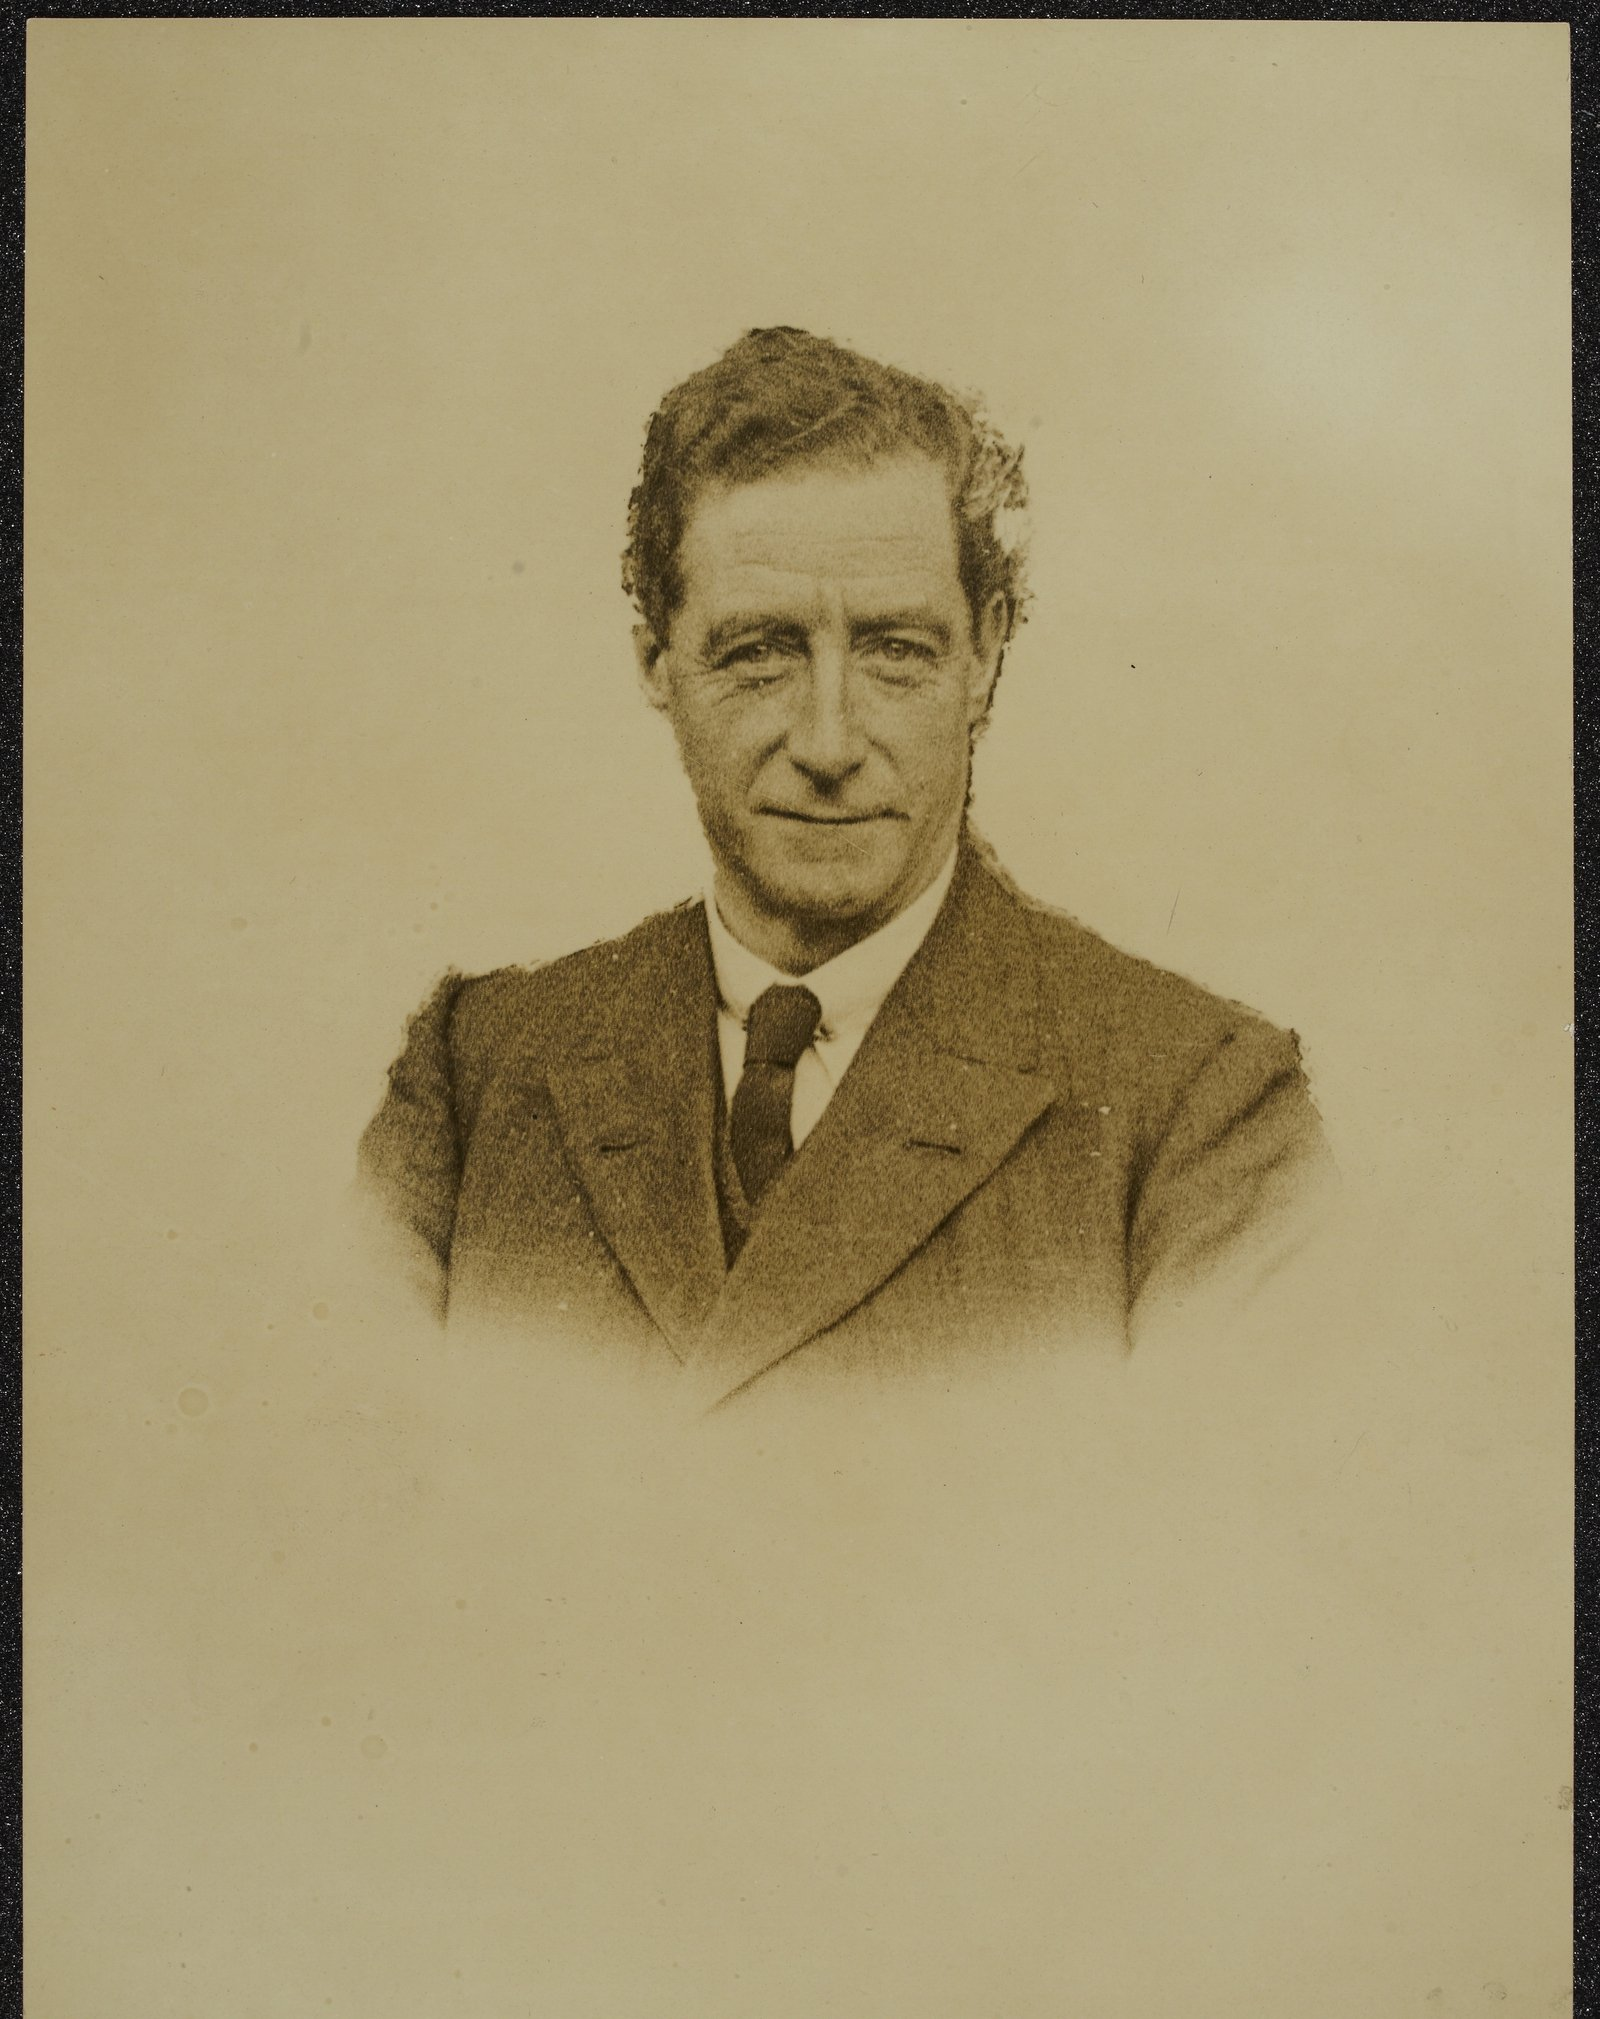 Image - Minister for Defence Cathal Brugha was determined to keep the IRA, now referred to as 'The Irish Army', under government control.  Credit: National Library of Ireland.